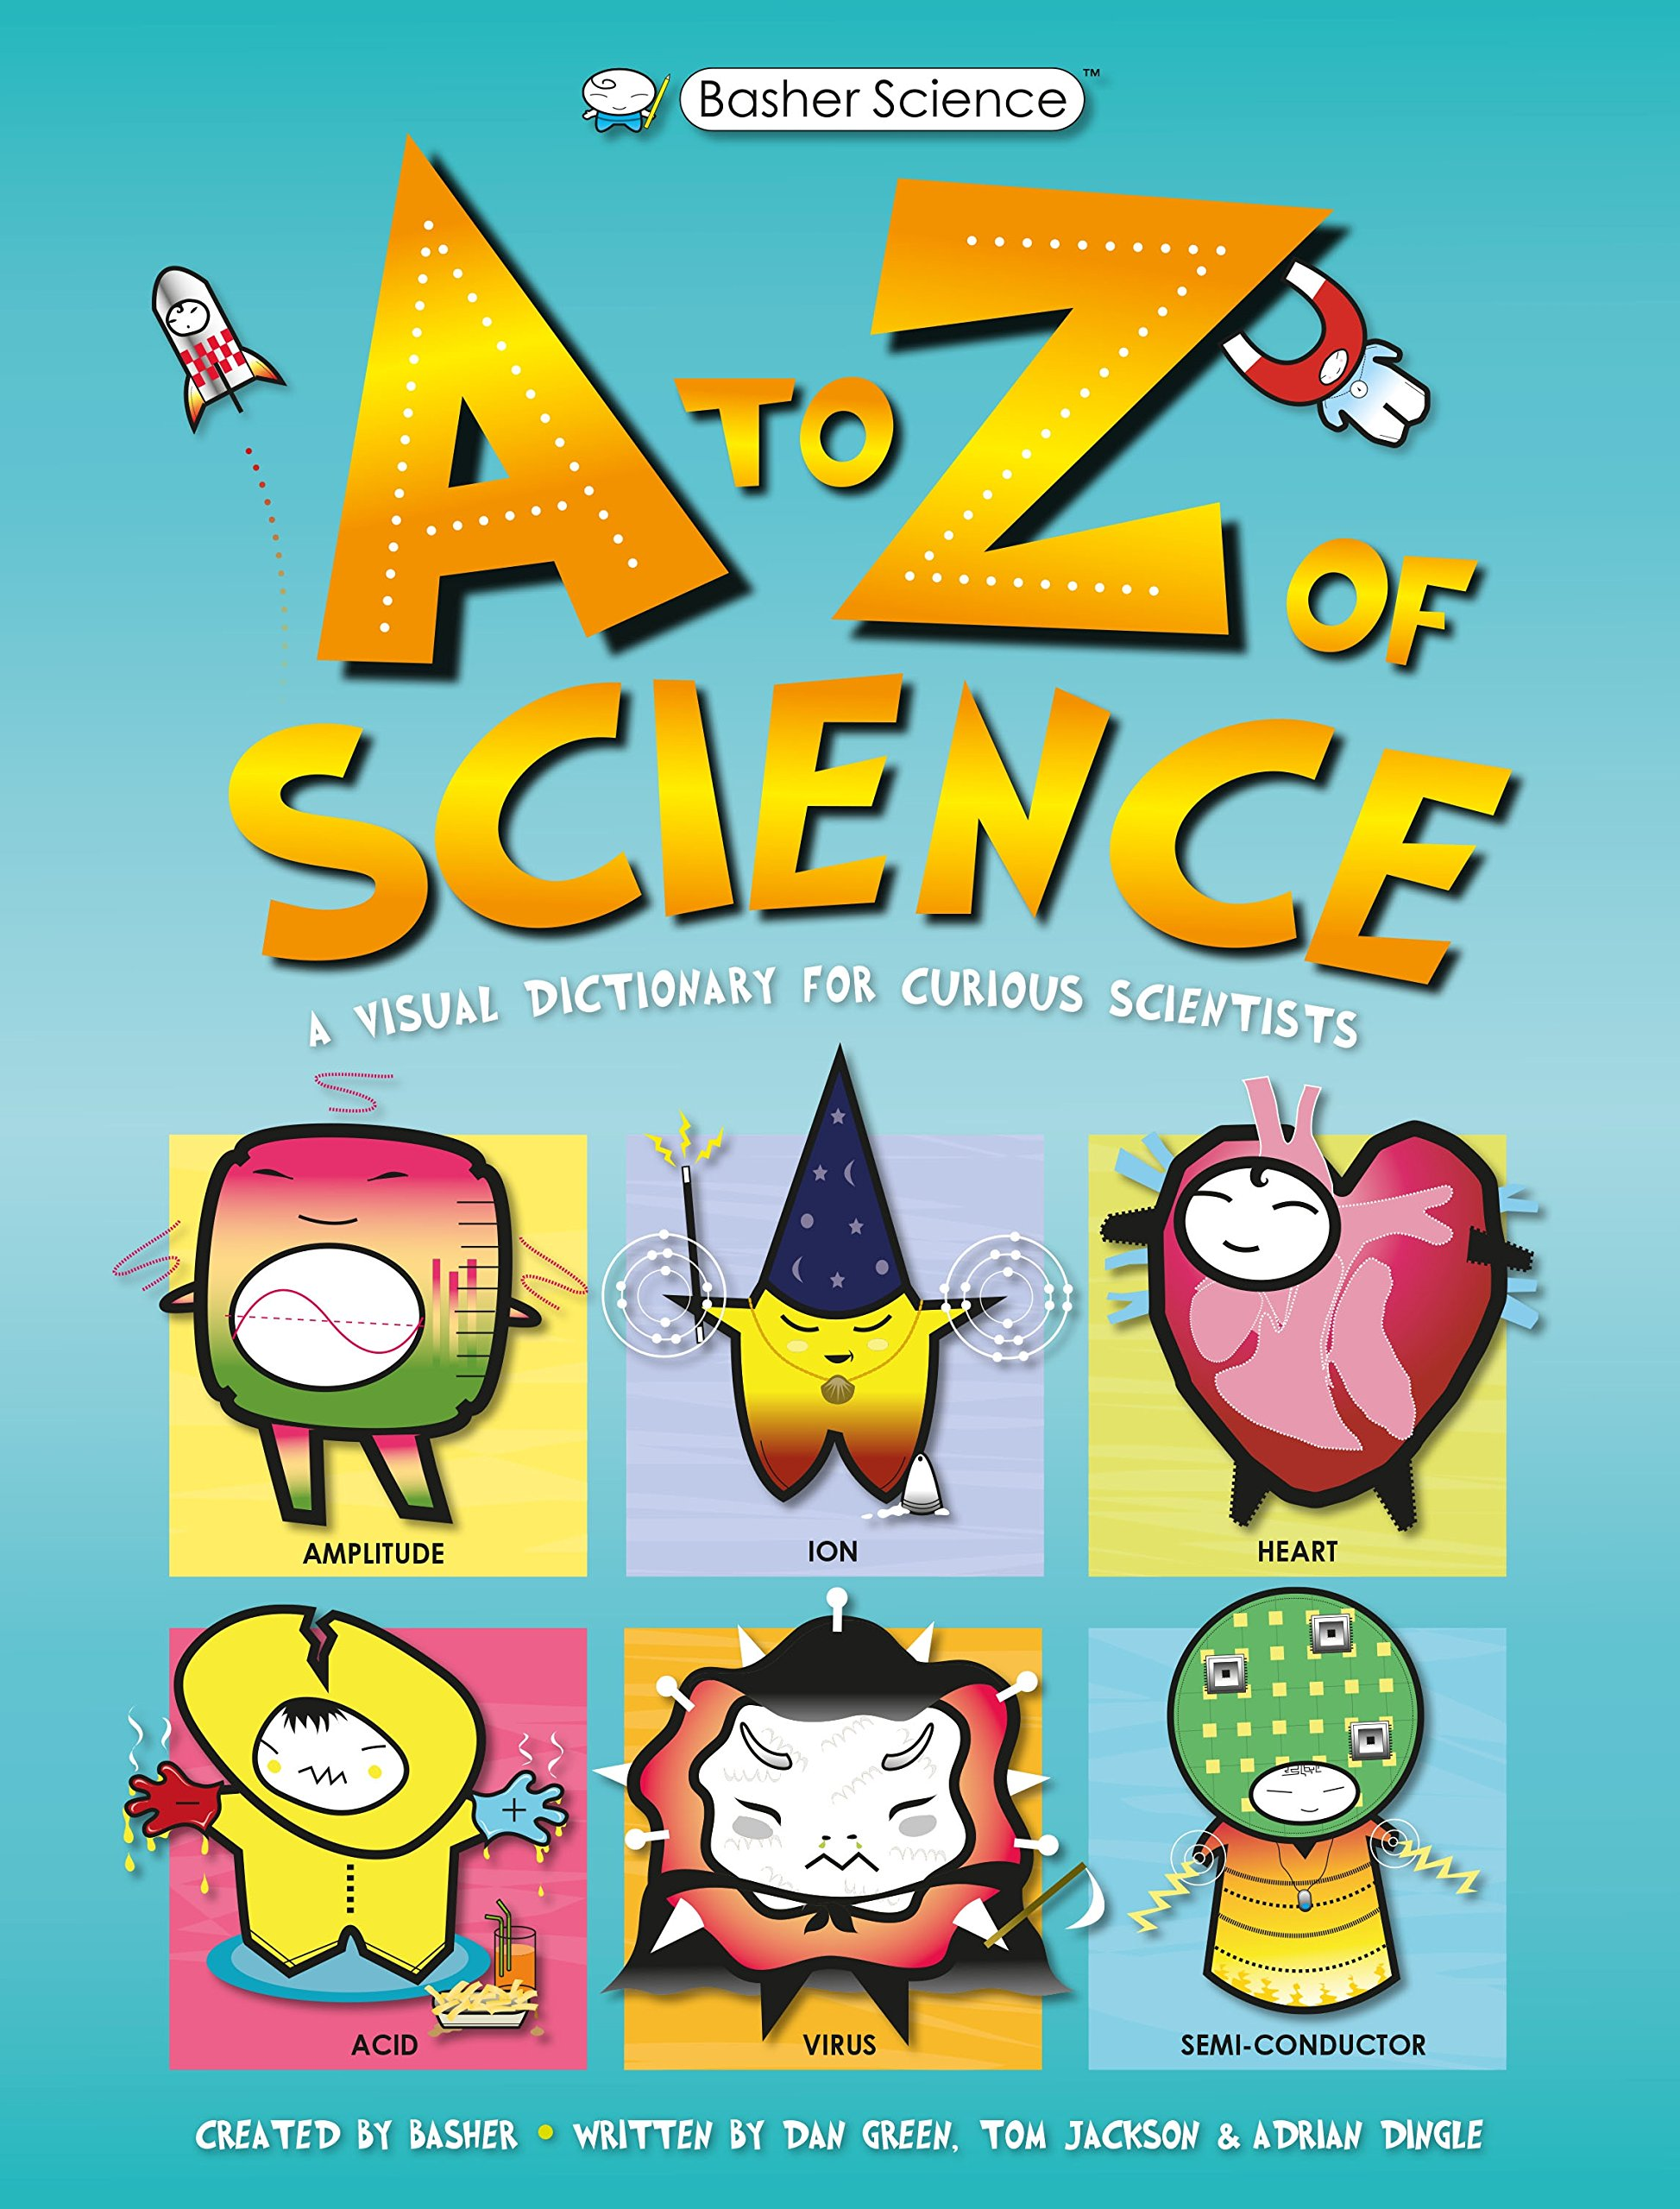 Basher Science: An A to Z of Science Hardcover – January 8, 2019